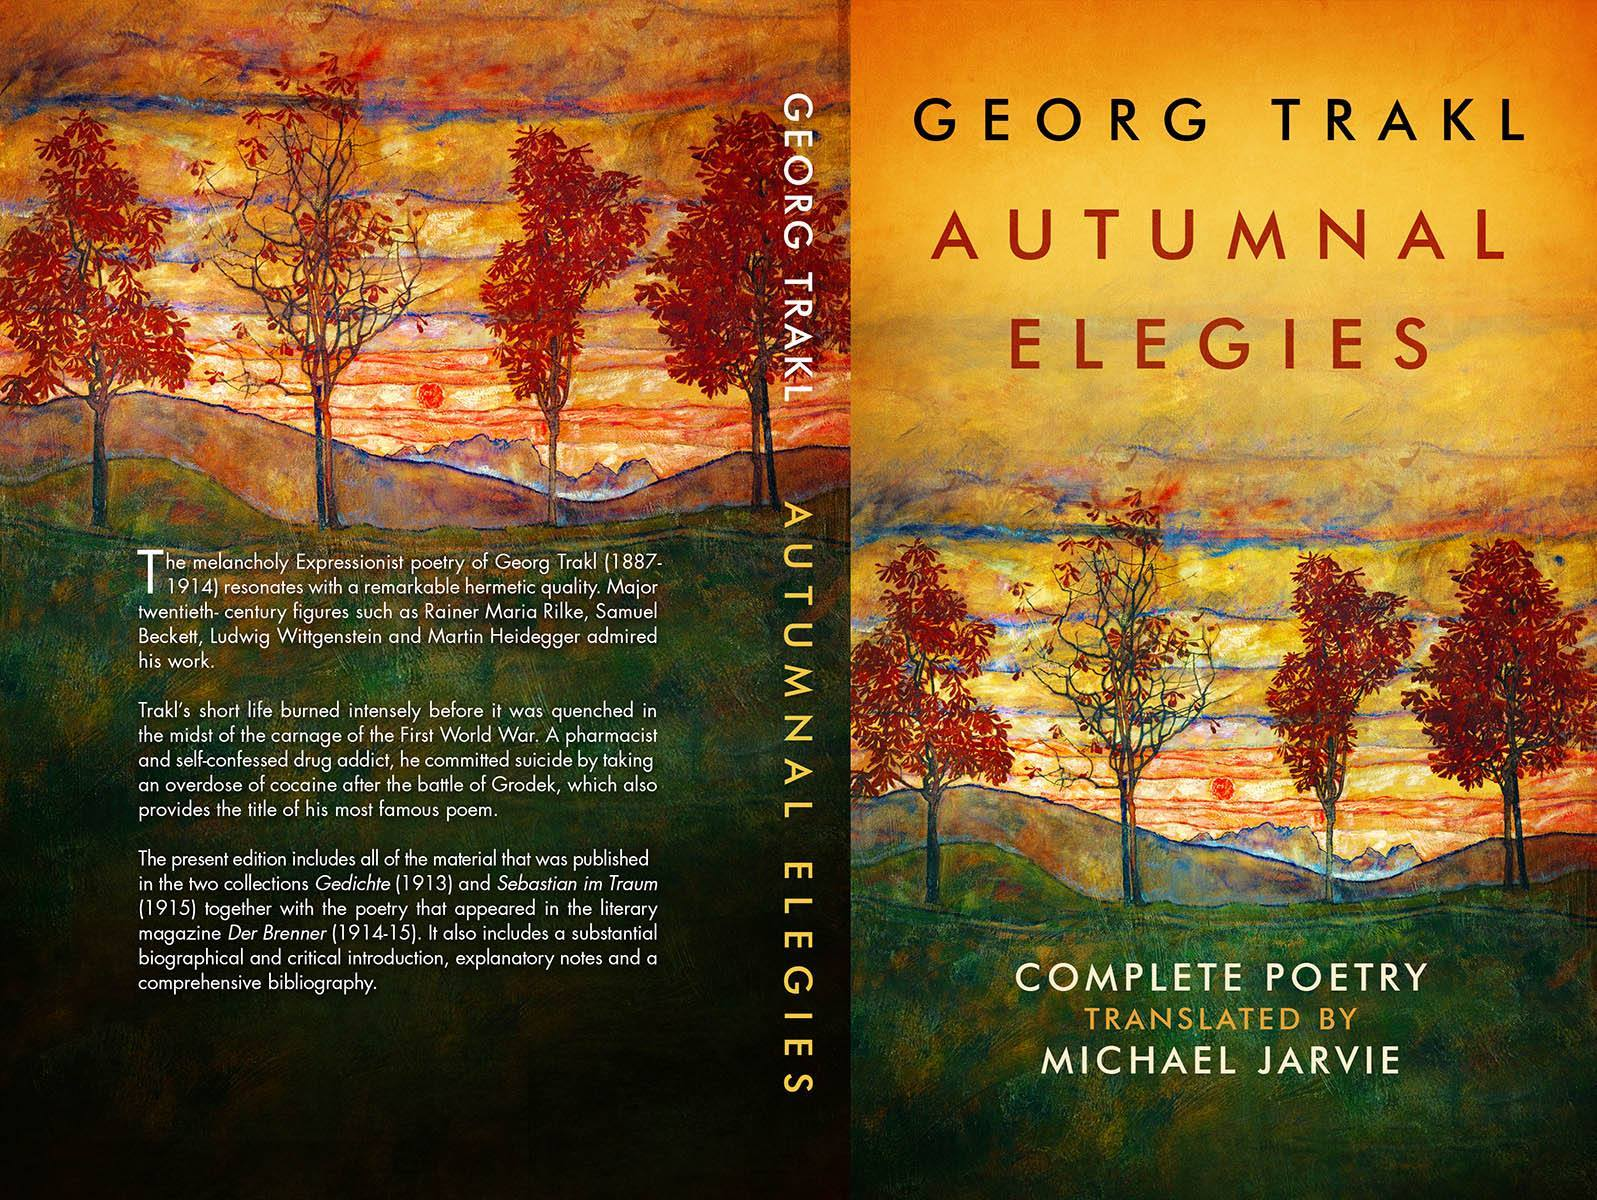 NEW BOOK: Autumnal Elegies: The Complete Poetry of Georg Trakl  by Michael Jarvie